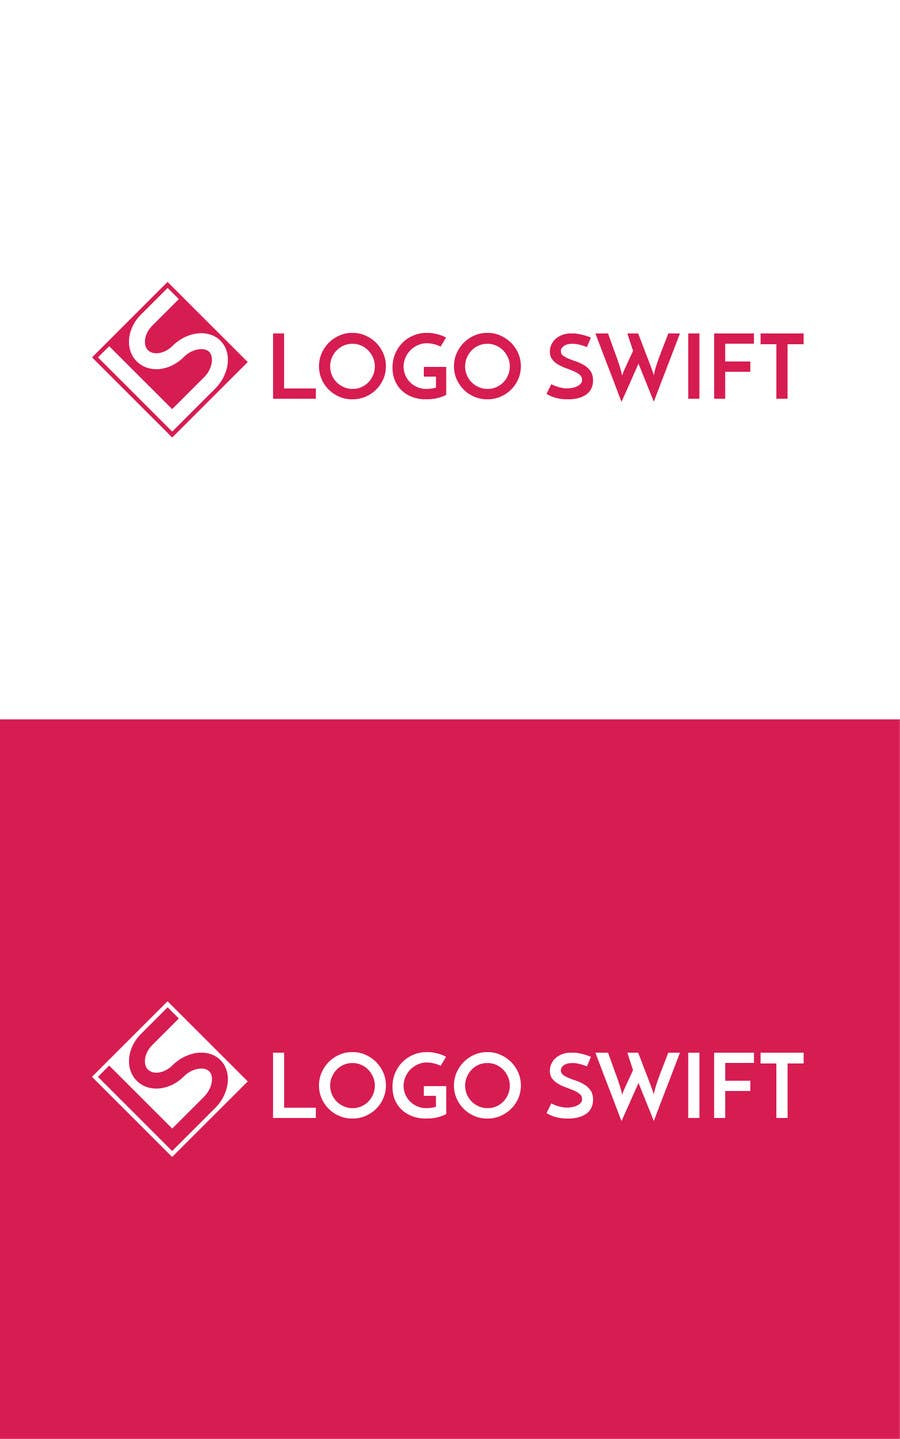 Proposition n°118 du concours Great Business Needs You To Design a Great Logo!